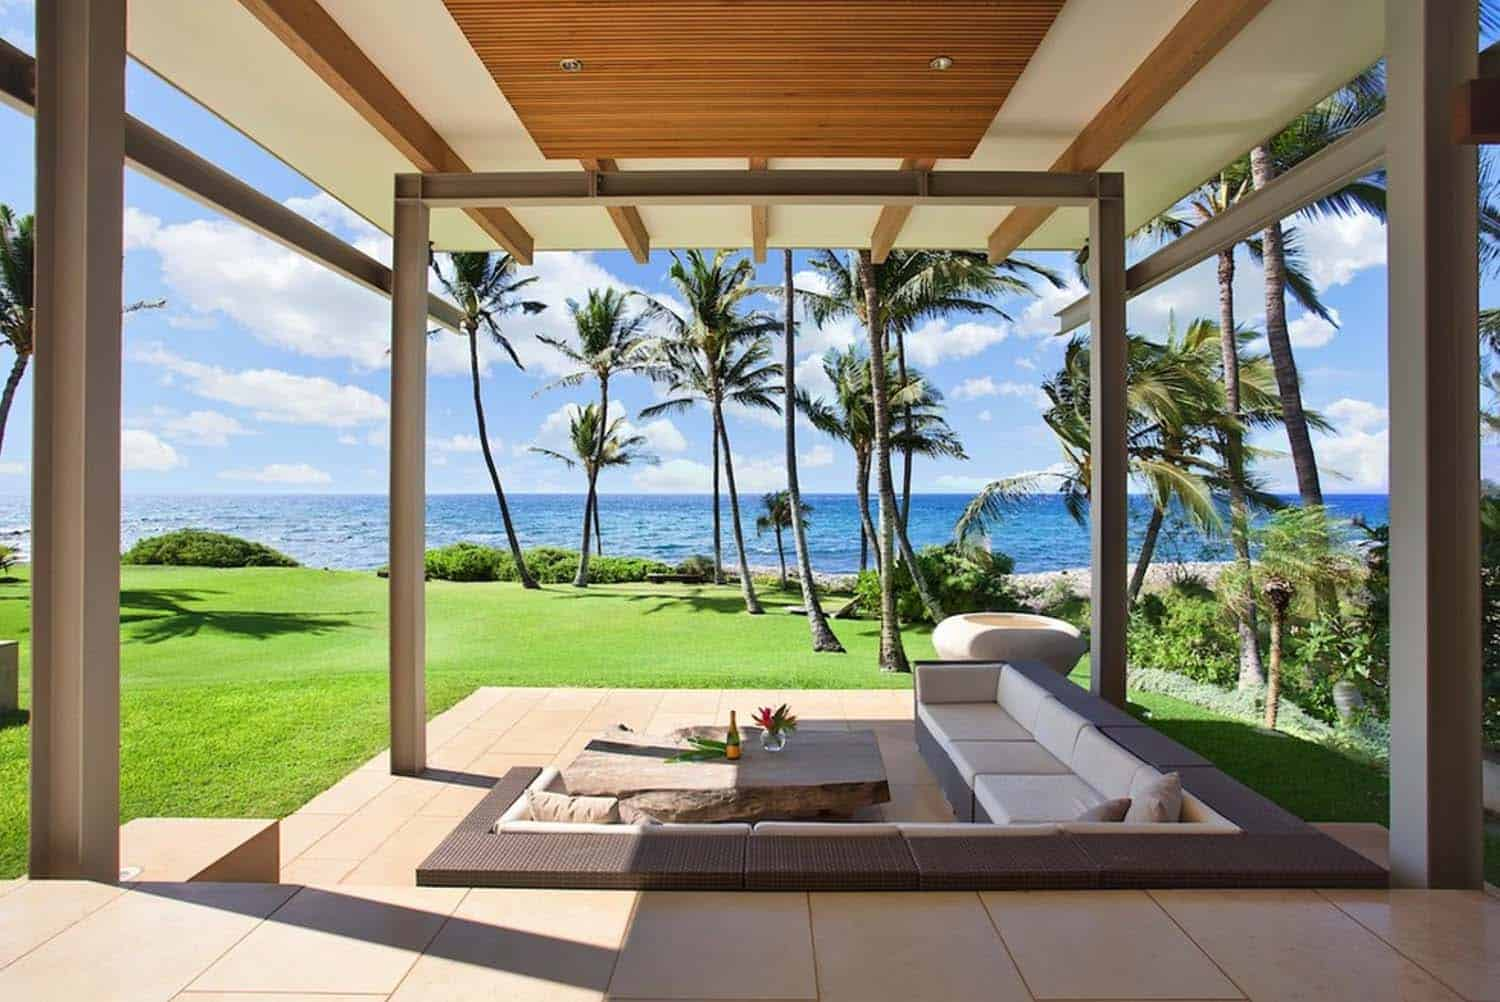 Tropical Maui Residence-Bossley Architects-07-1 Kindesign